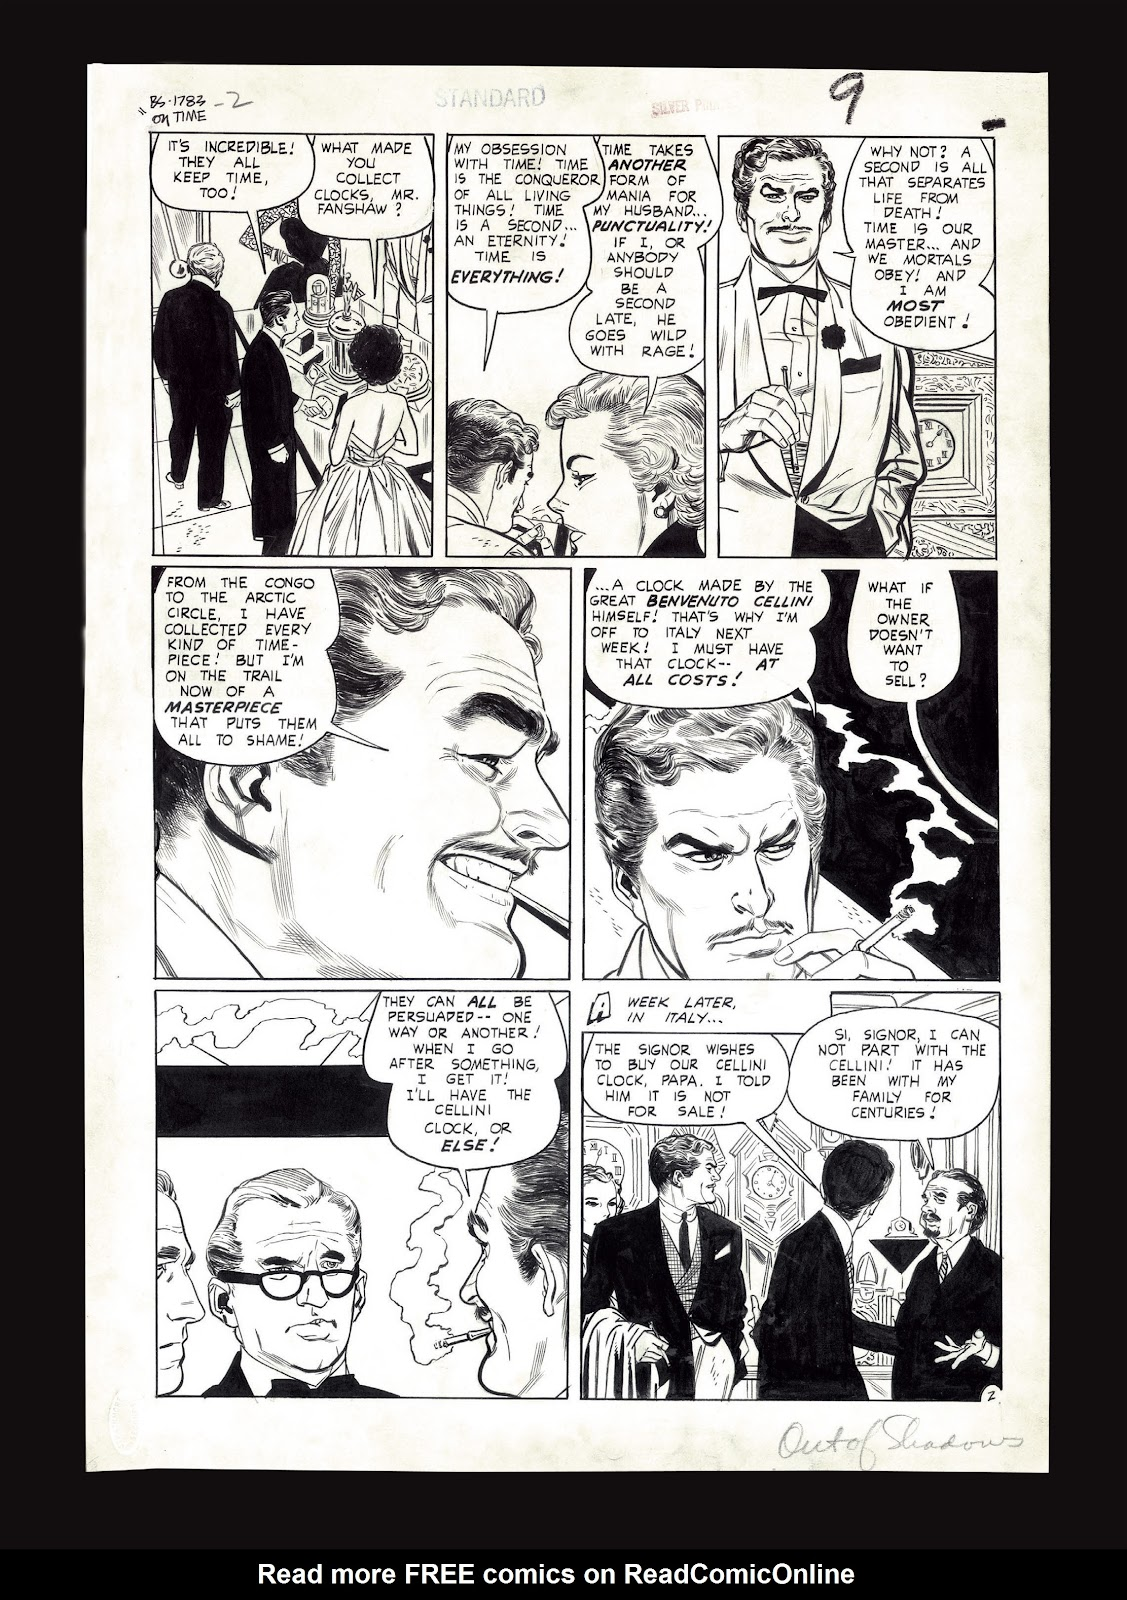 Read online Setting the Standard: Comics by Alex Toth 1952-1954 comic -  Issue # TPB (Part 4) - 130